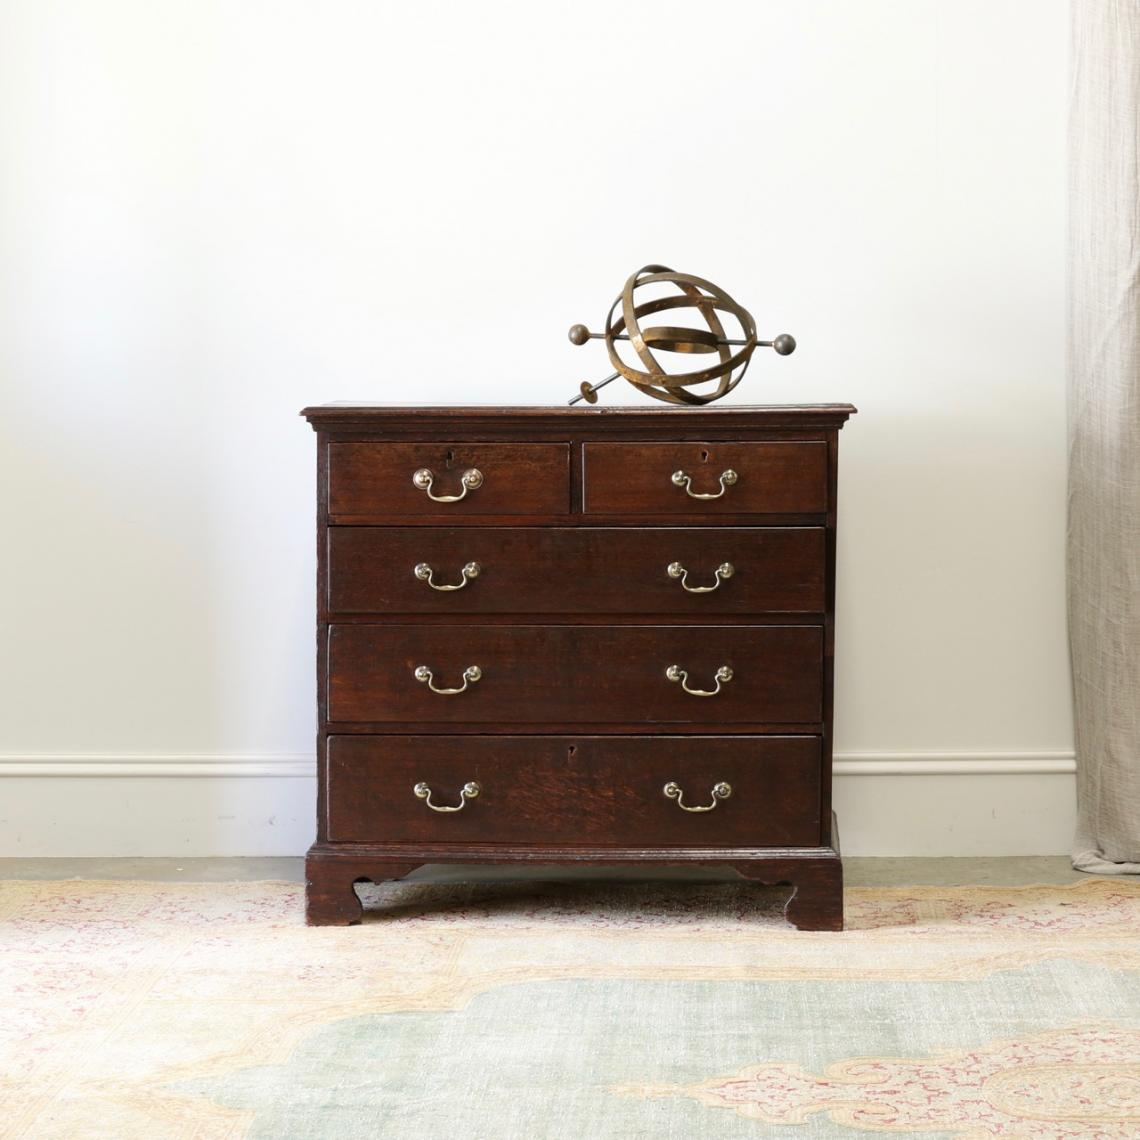 113-70 - Georgian Chest of Drawers